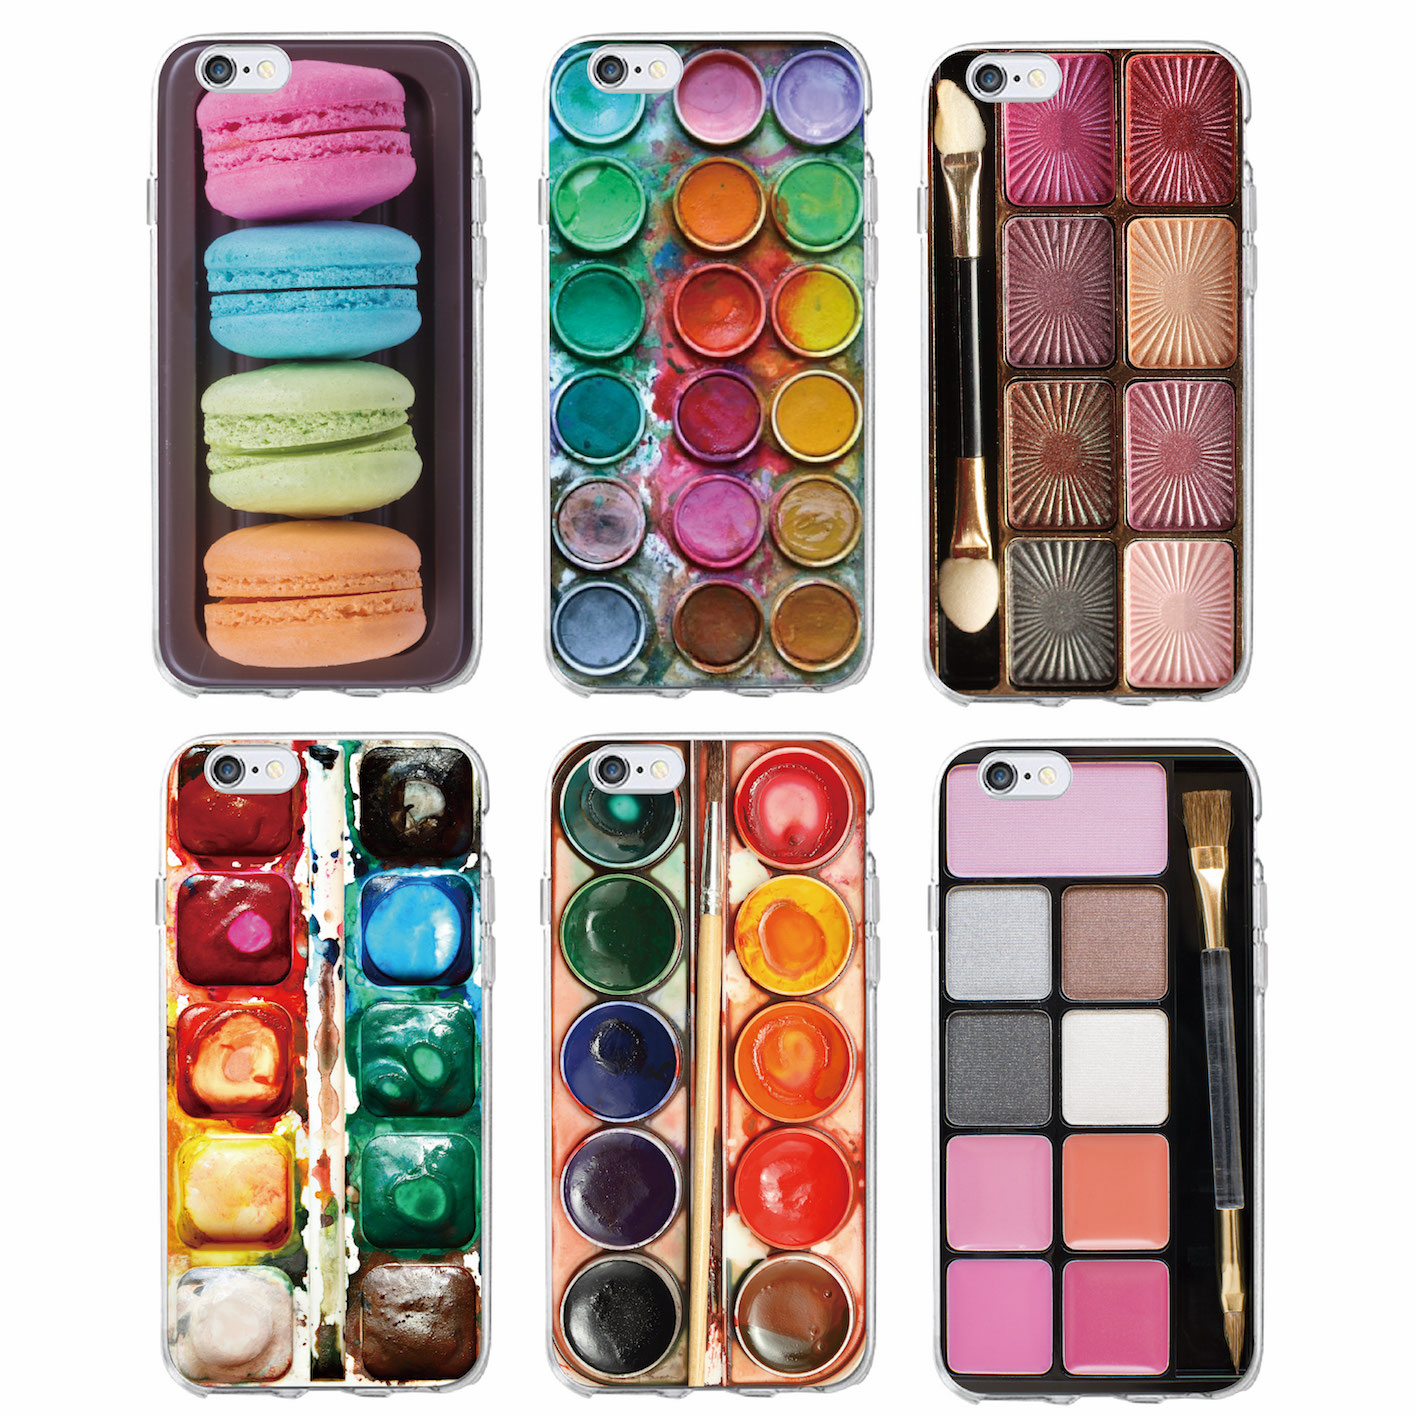 Colorful Watercolors Set Paint Palette Cake Macaroon <font><b>Makeup</b></font> Soft Phone <font><b>Case</b></font> Fundas For <font><b>iPhone</b></font> 11 Pro 6 7 7Plus 8 8Plus X XS Max image